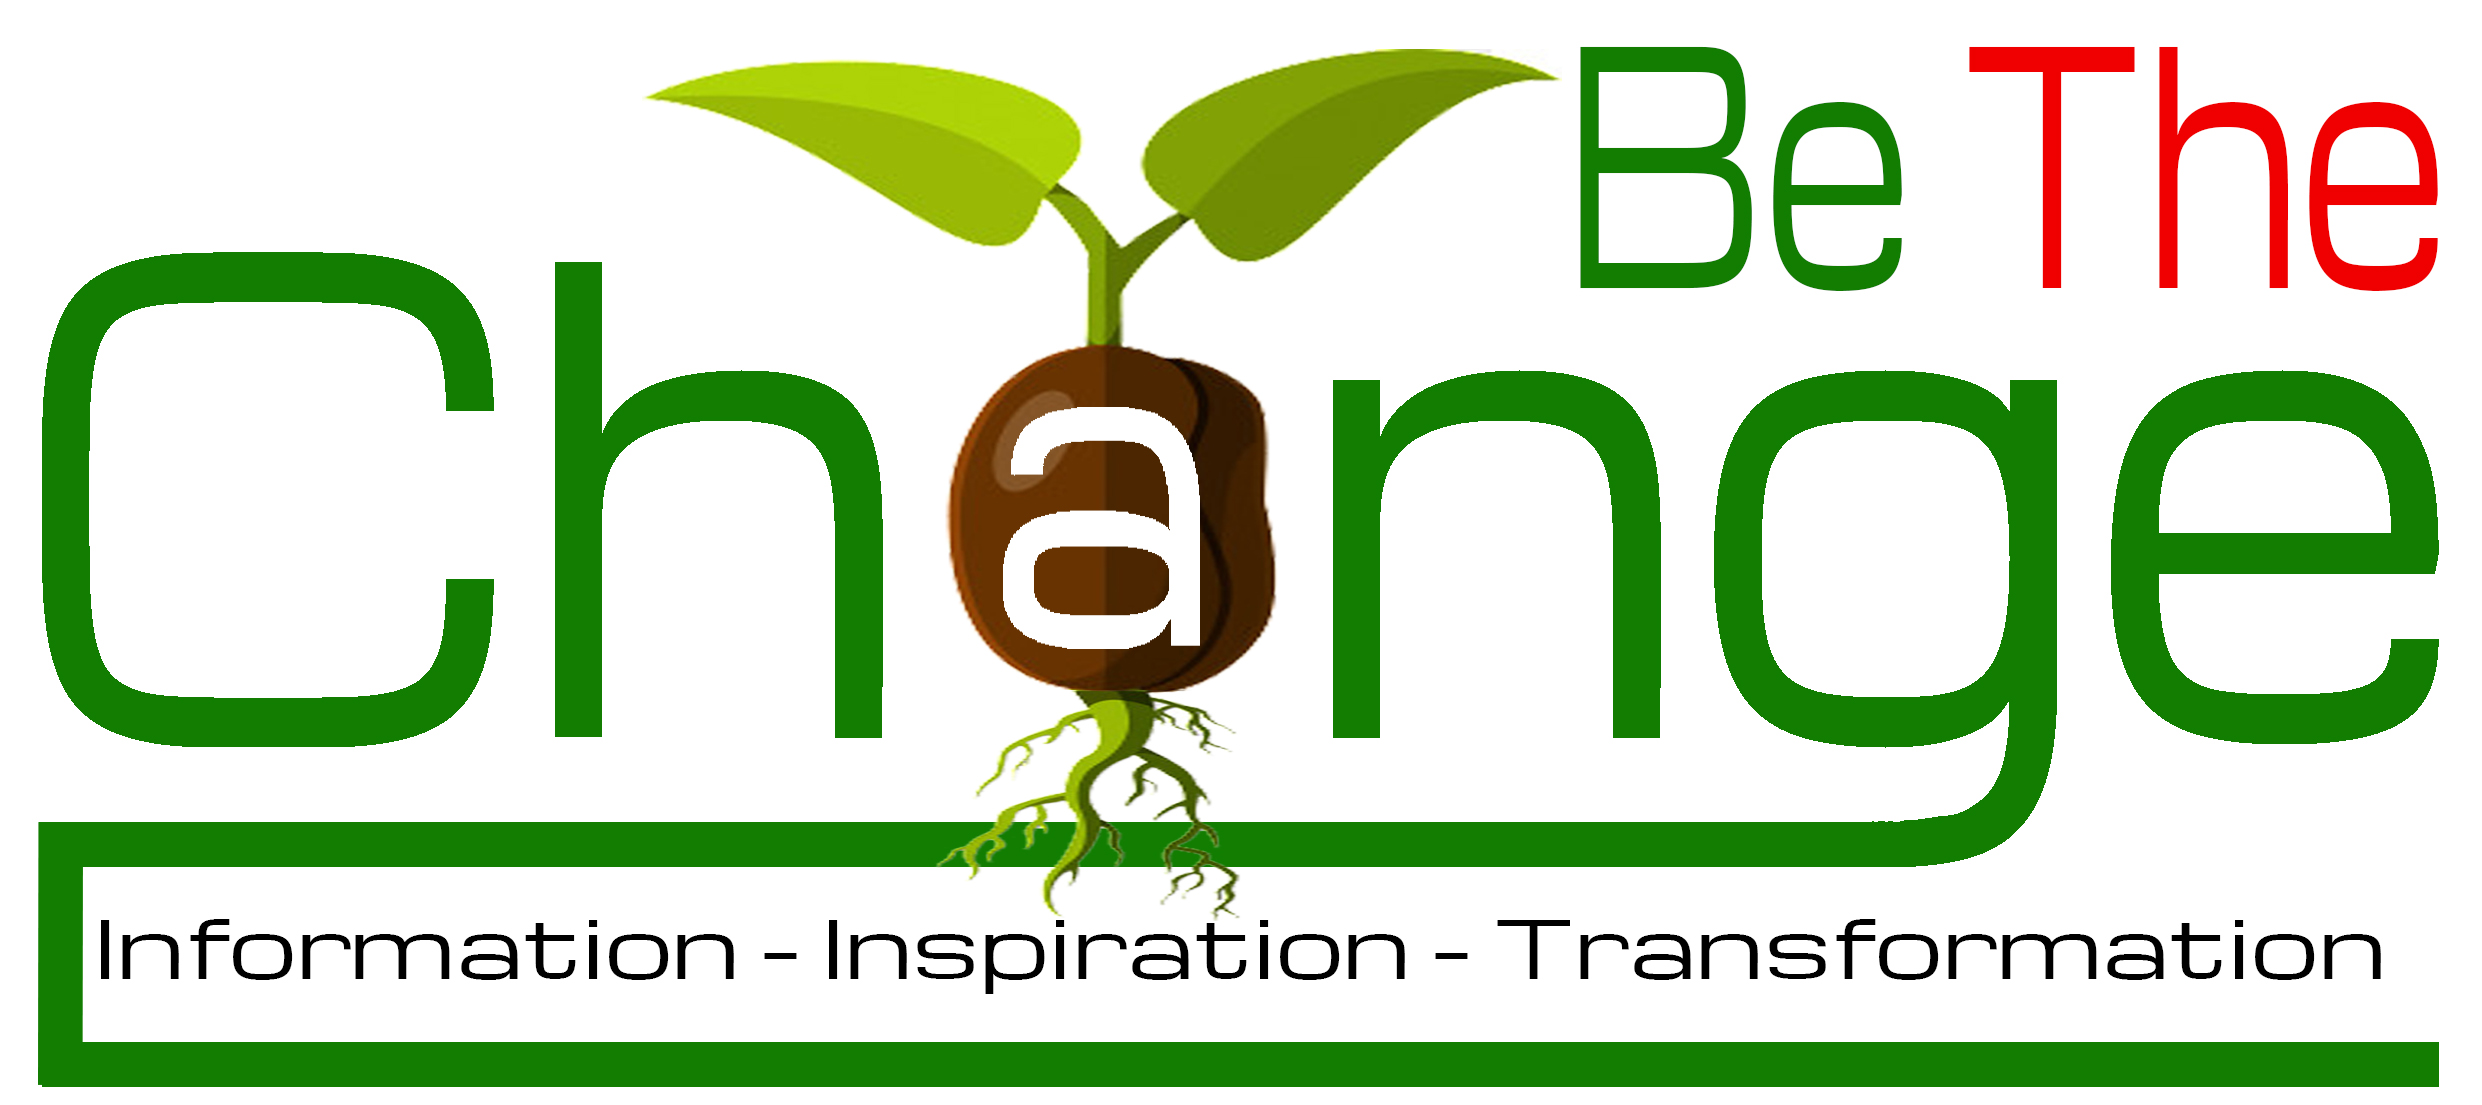 LOGO BE THE CHANGE